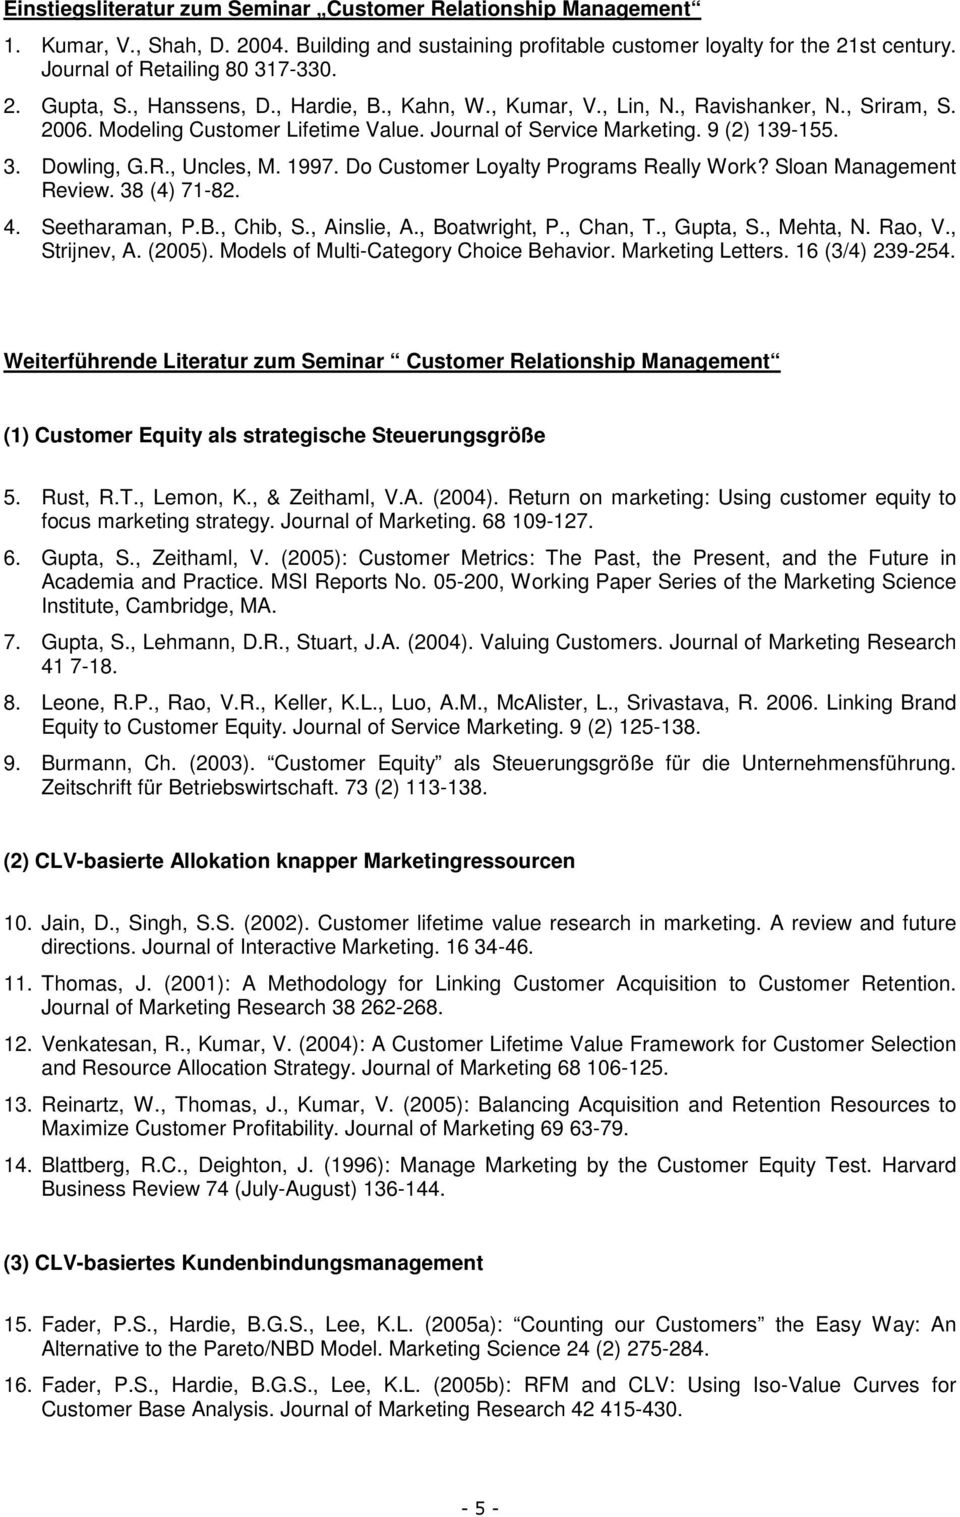 1997. Do Customer Loyalty Programs Really Work? Sloan Management Review. 38 (4) 71-82. 4. Seetharaman, P.B., Chib, S., Ainslie, A., Boatwright, P., Chan, T., Gupta, S., Mehta, N. Rao, V., Strijnev, A.